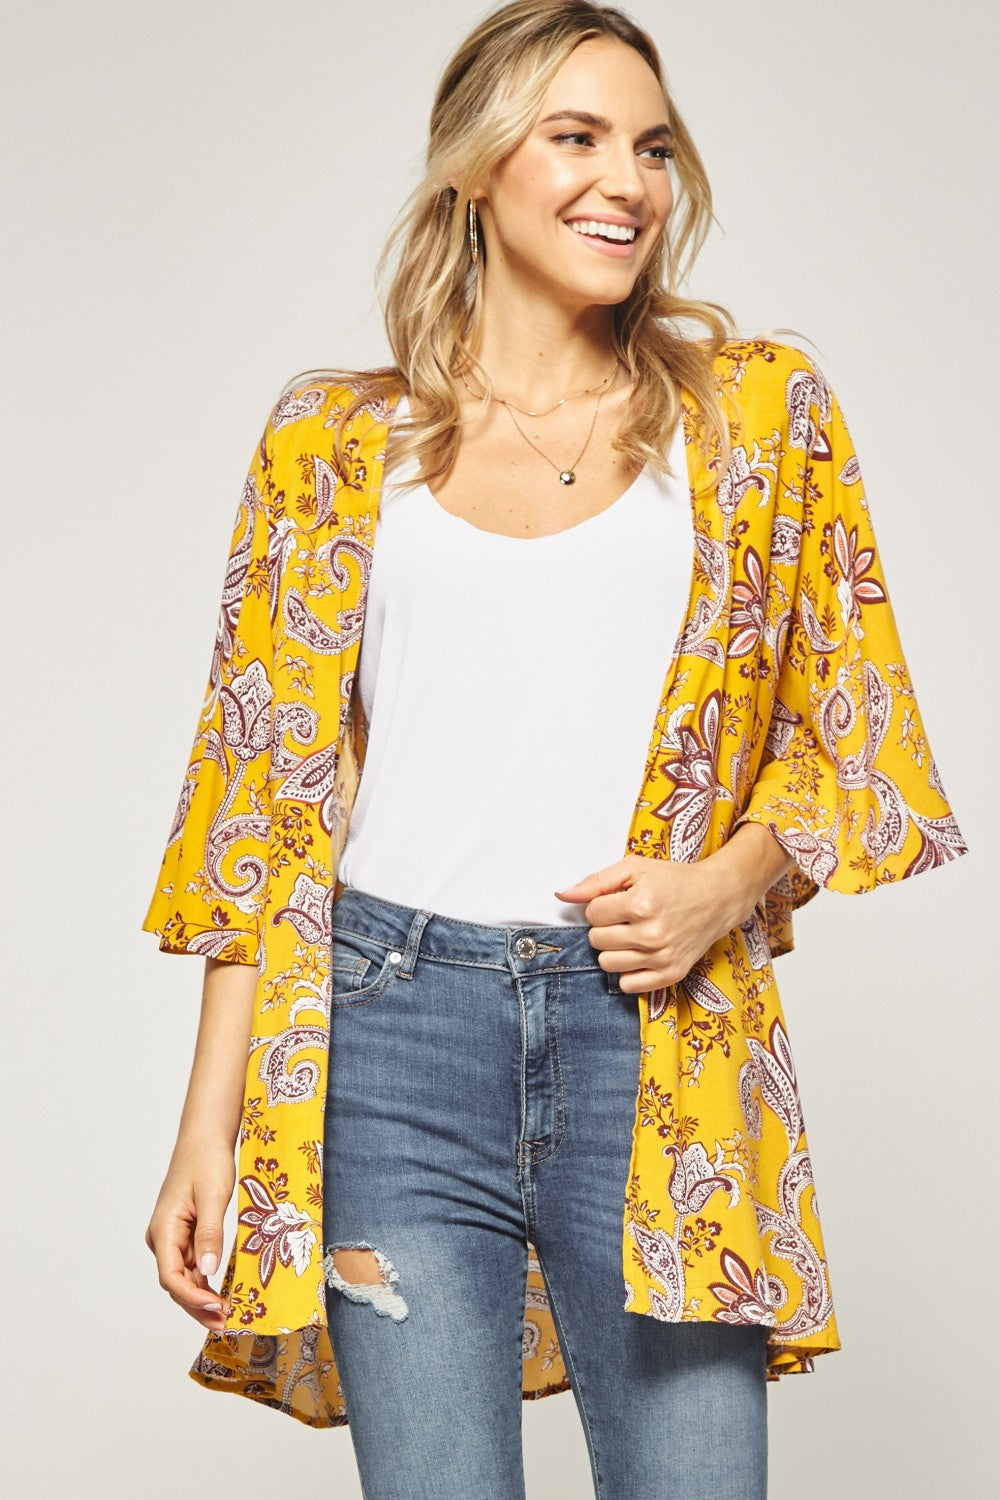 Short Bell Sleeved Cardigan in Mustard w/Paisley Design